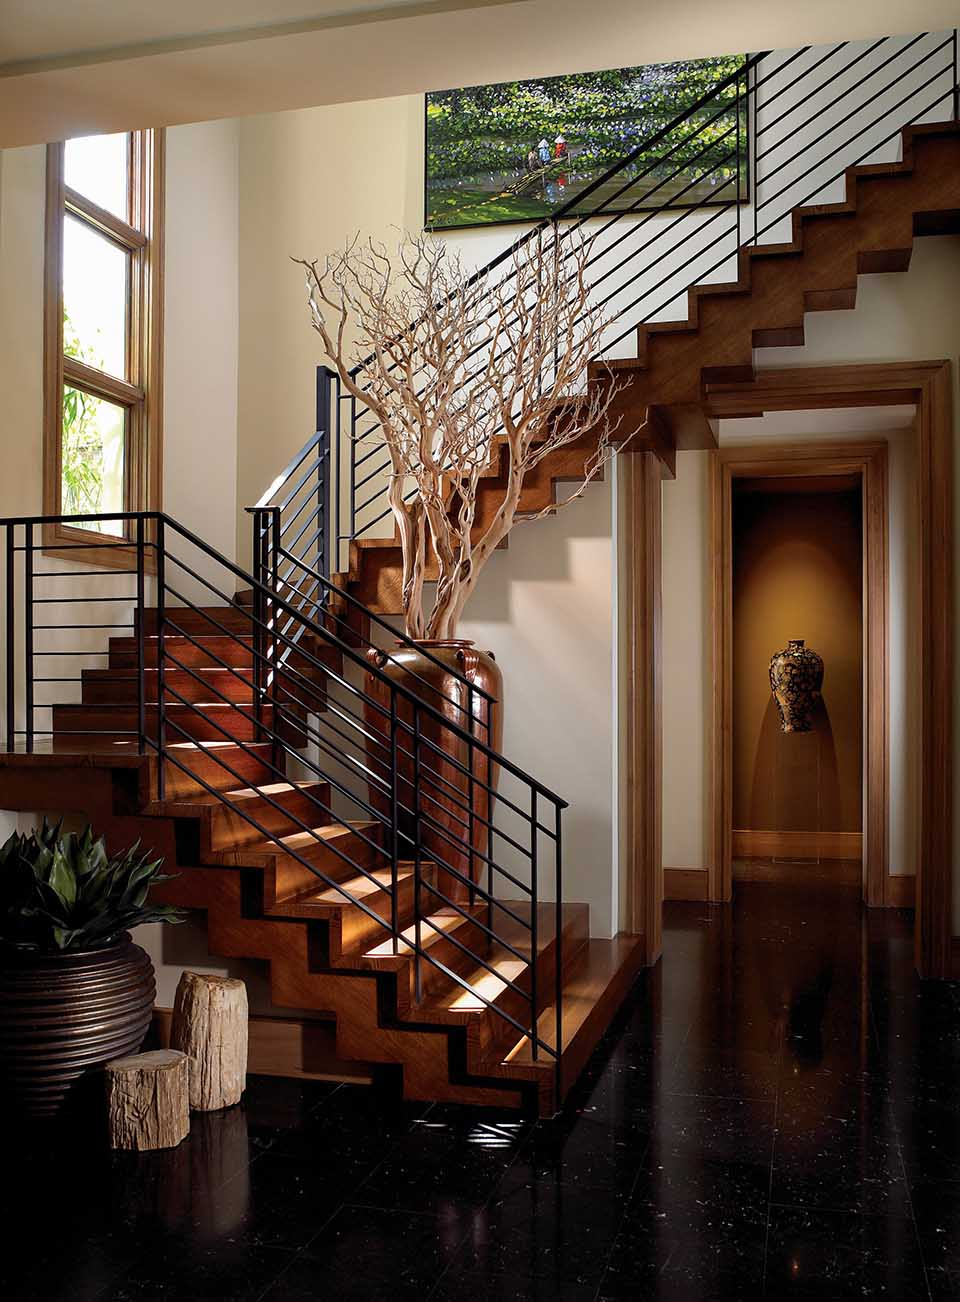 Home Interior Design: Artistic Stairs Canada